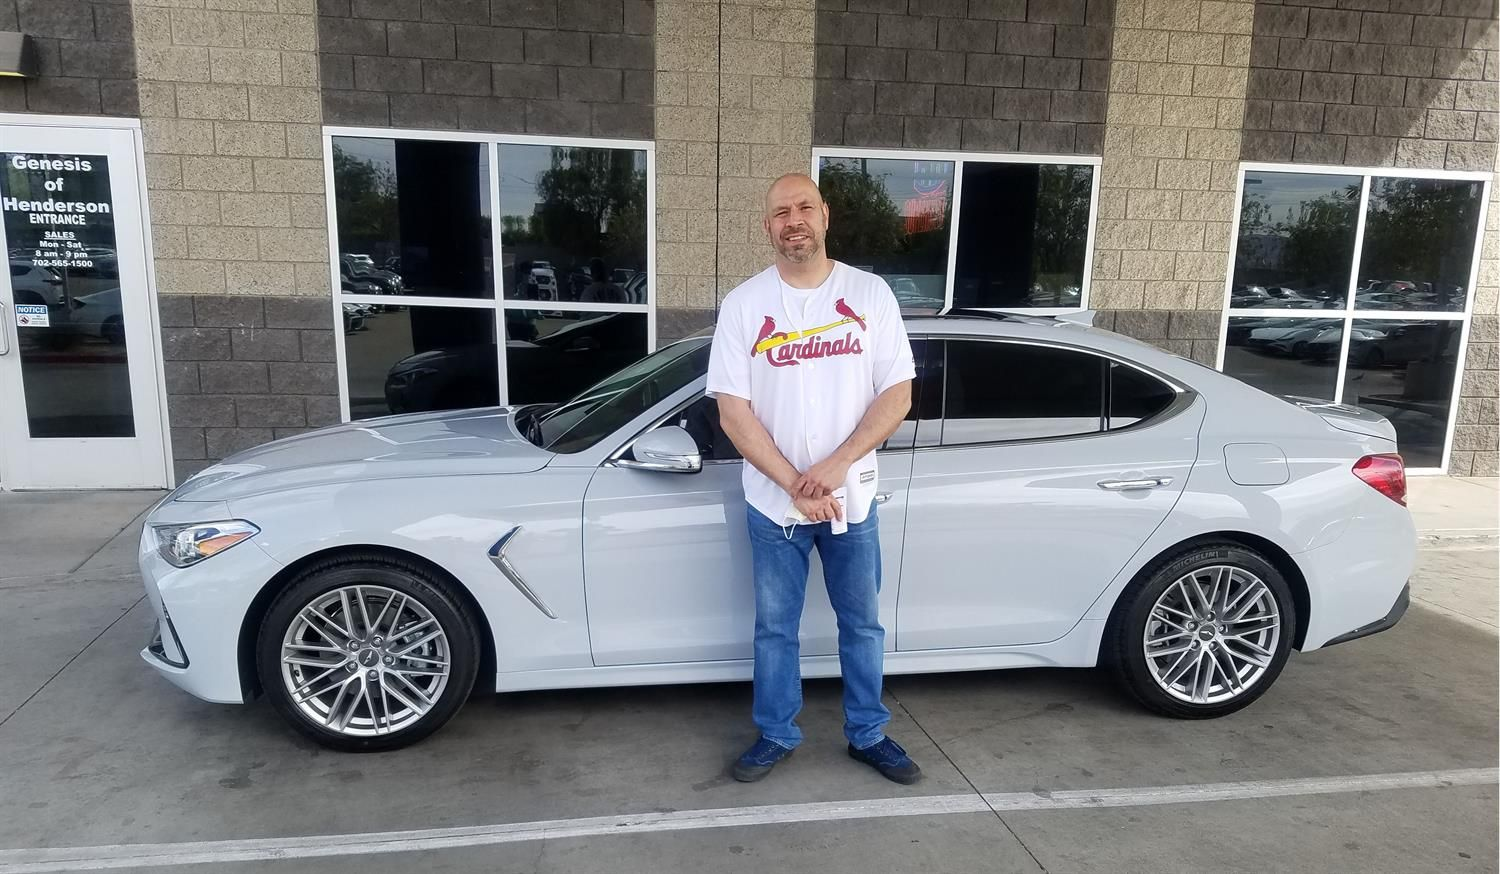 Emory S New 2020 Genesis G70 Congratulations And Best Wishes From Henderson Hyundai Superstore And Anas Ghafoory In 2020 New Hyundai Hyundai Hyundai Dealership